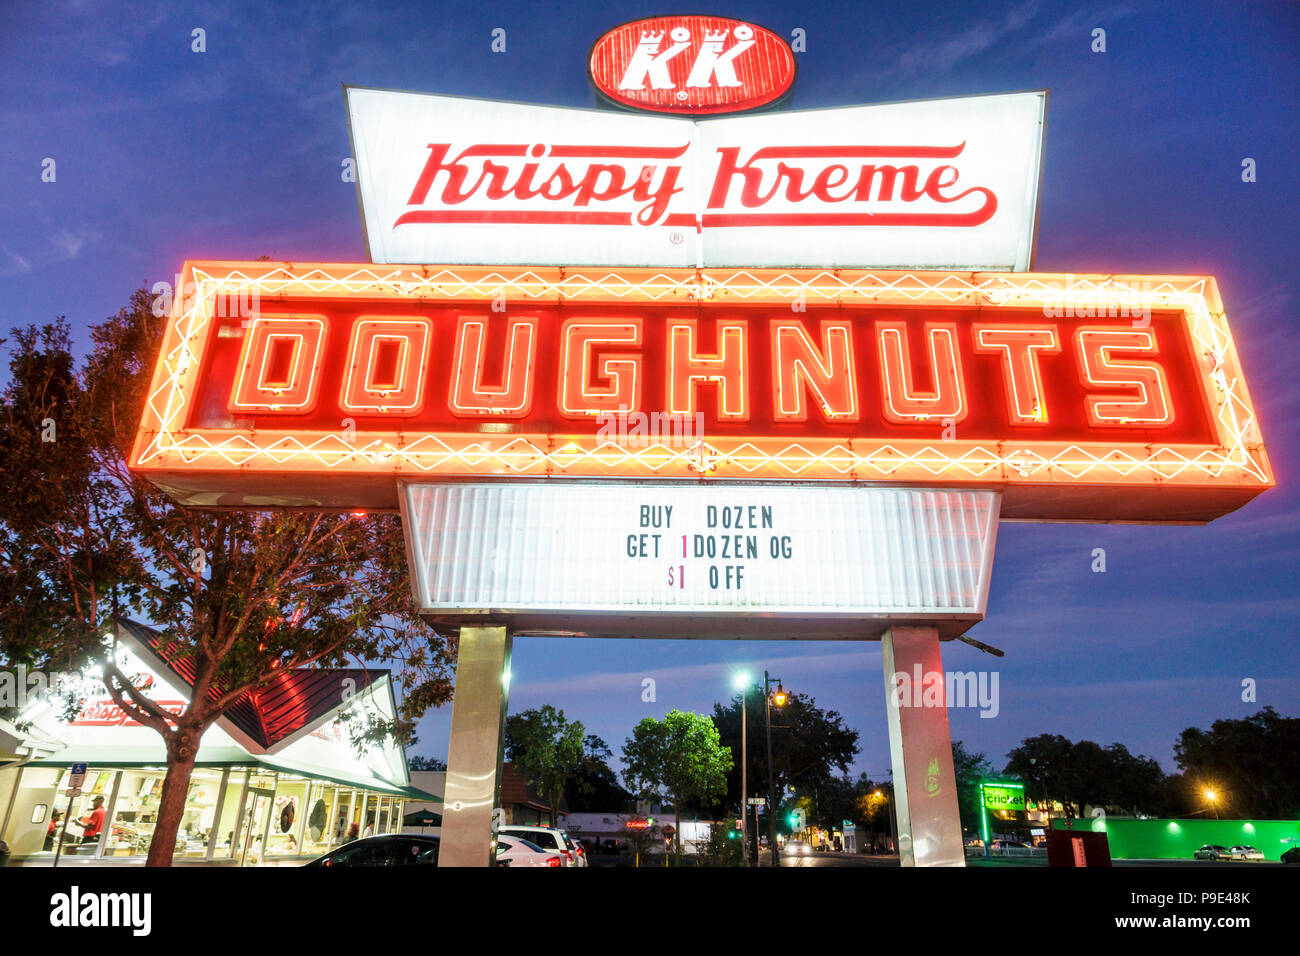 Florida Gainesville Krispy Kreme Doughnuts neon sign night coffeehouse chain twilight dusk parking lot cars sale promotion - Stock Image